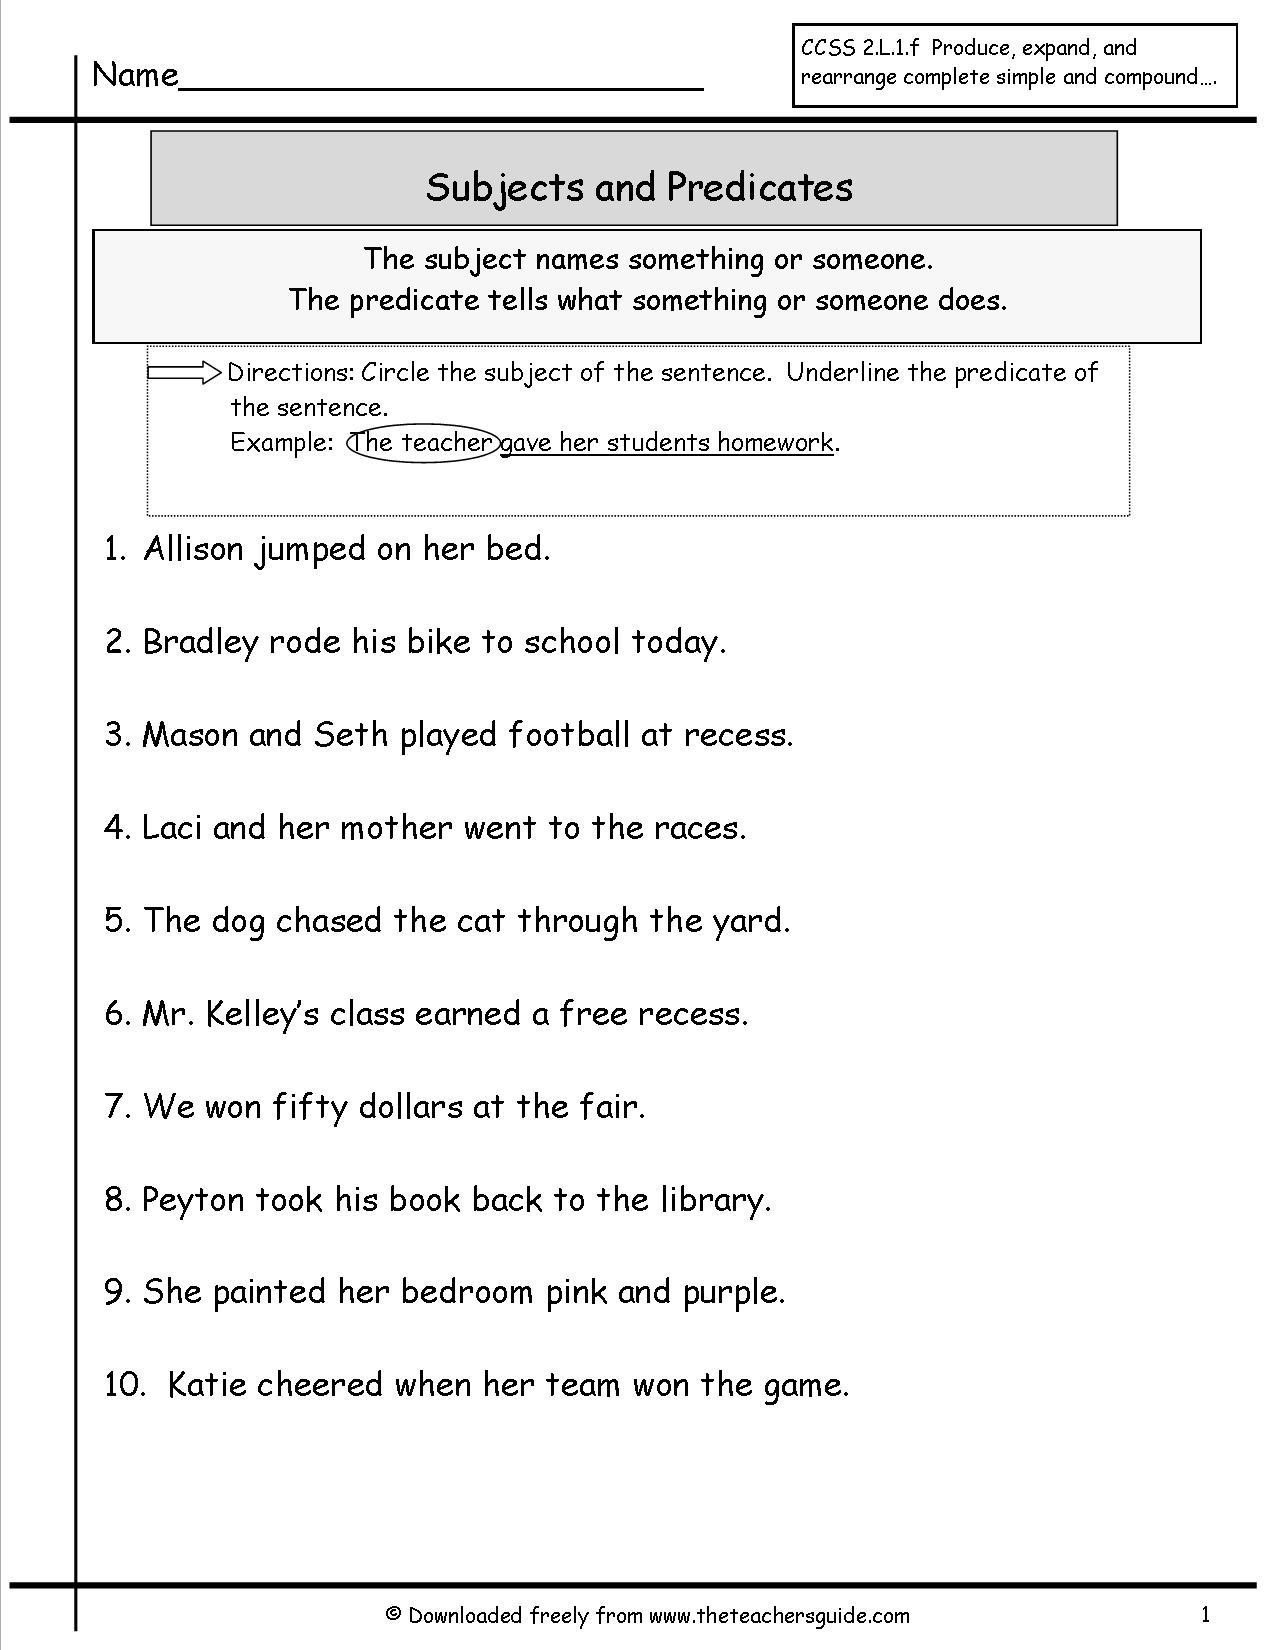 Free Subject and Predicate Worksheets Second Grade Subject and Predicate Worksheet